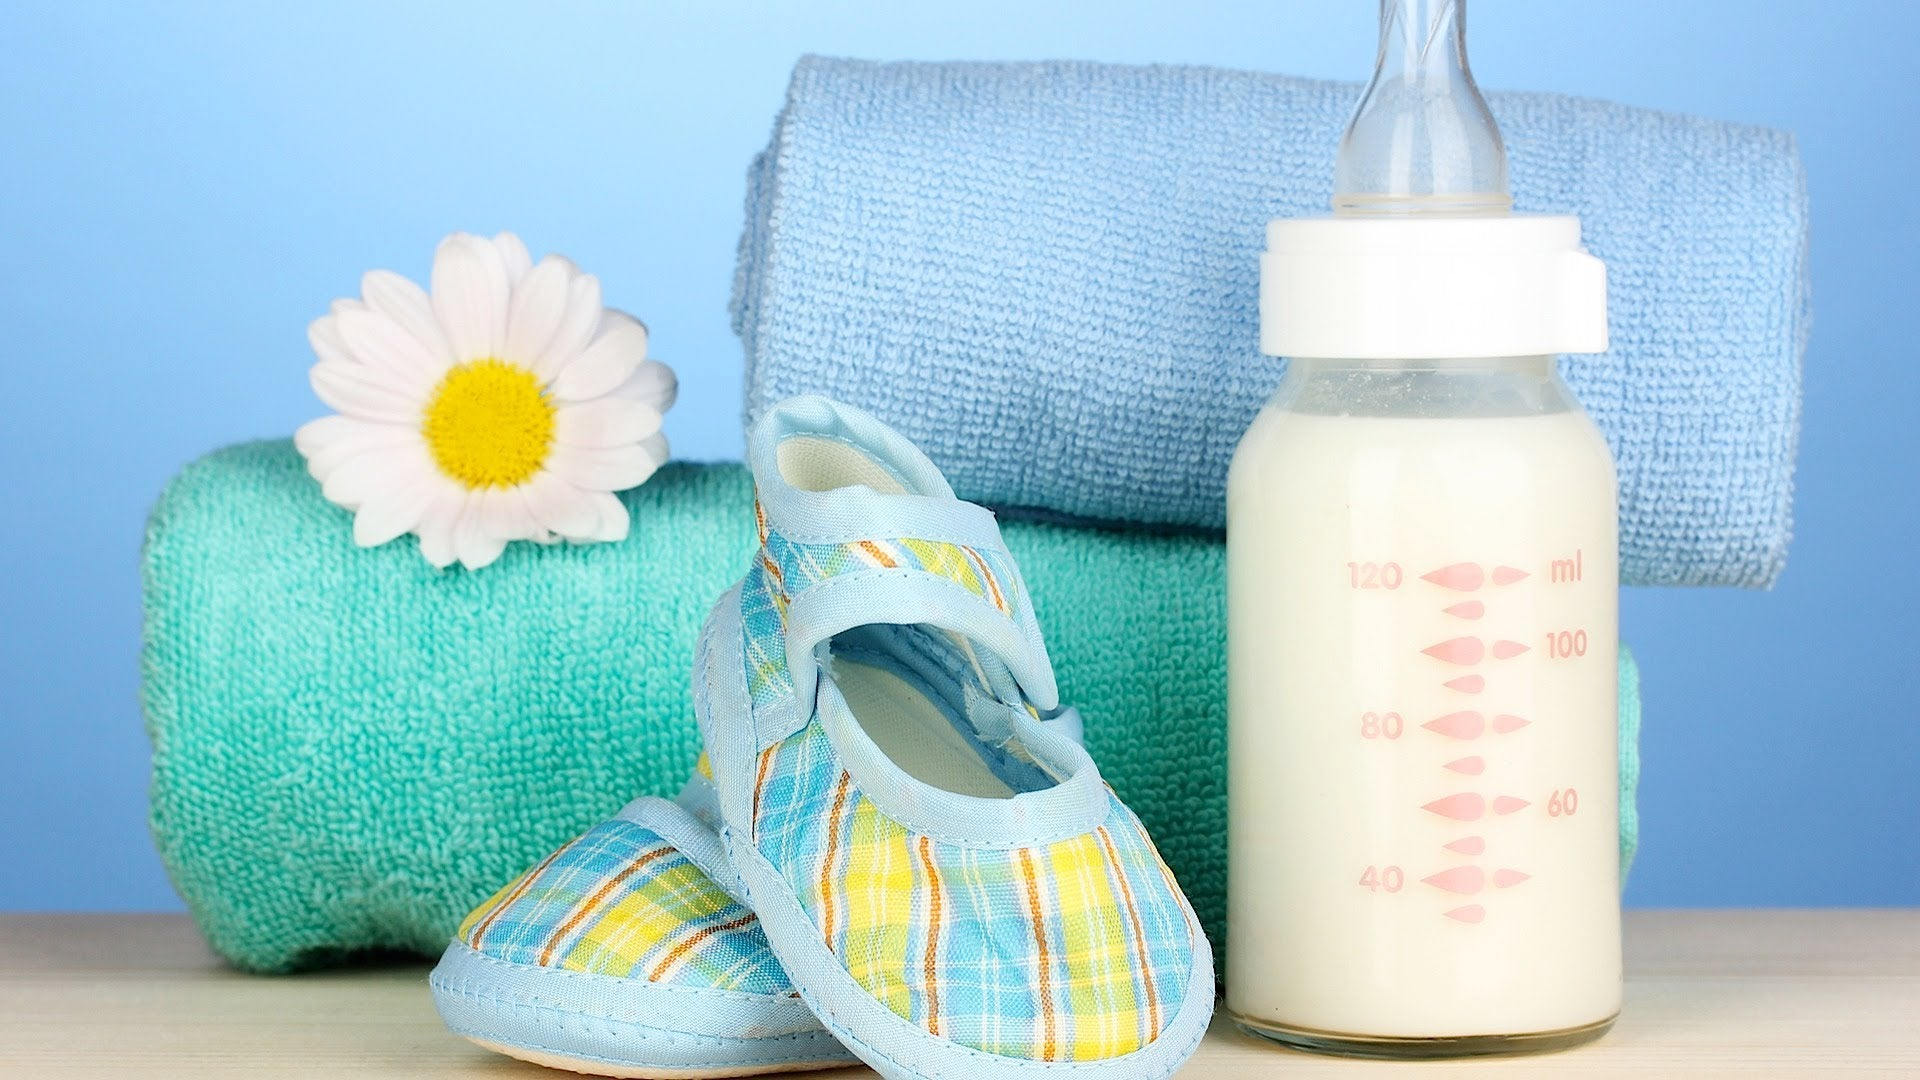 Cute baby shoes and bottled milk with pastel-colored towels on background